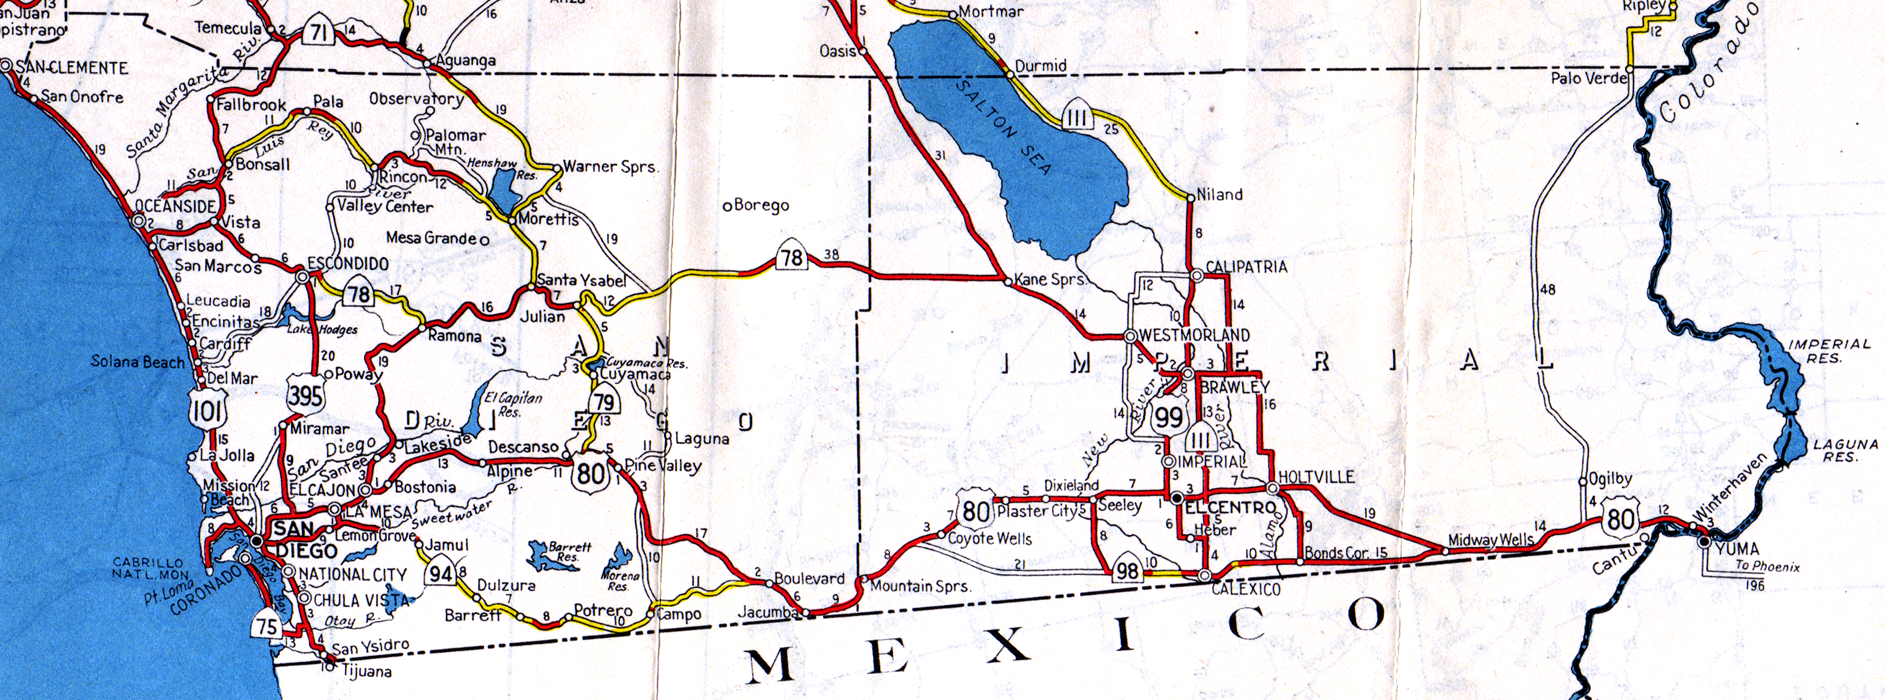 1944 san diego and imperial map